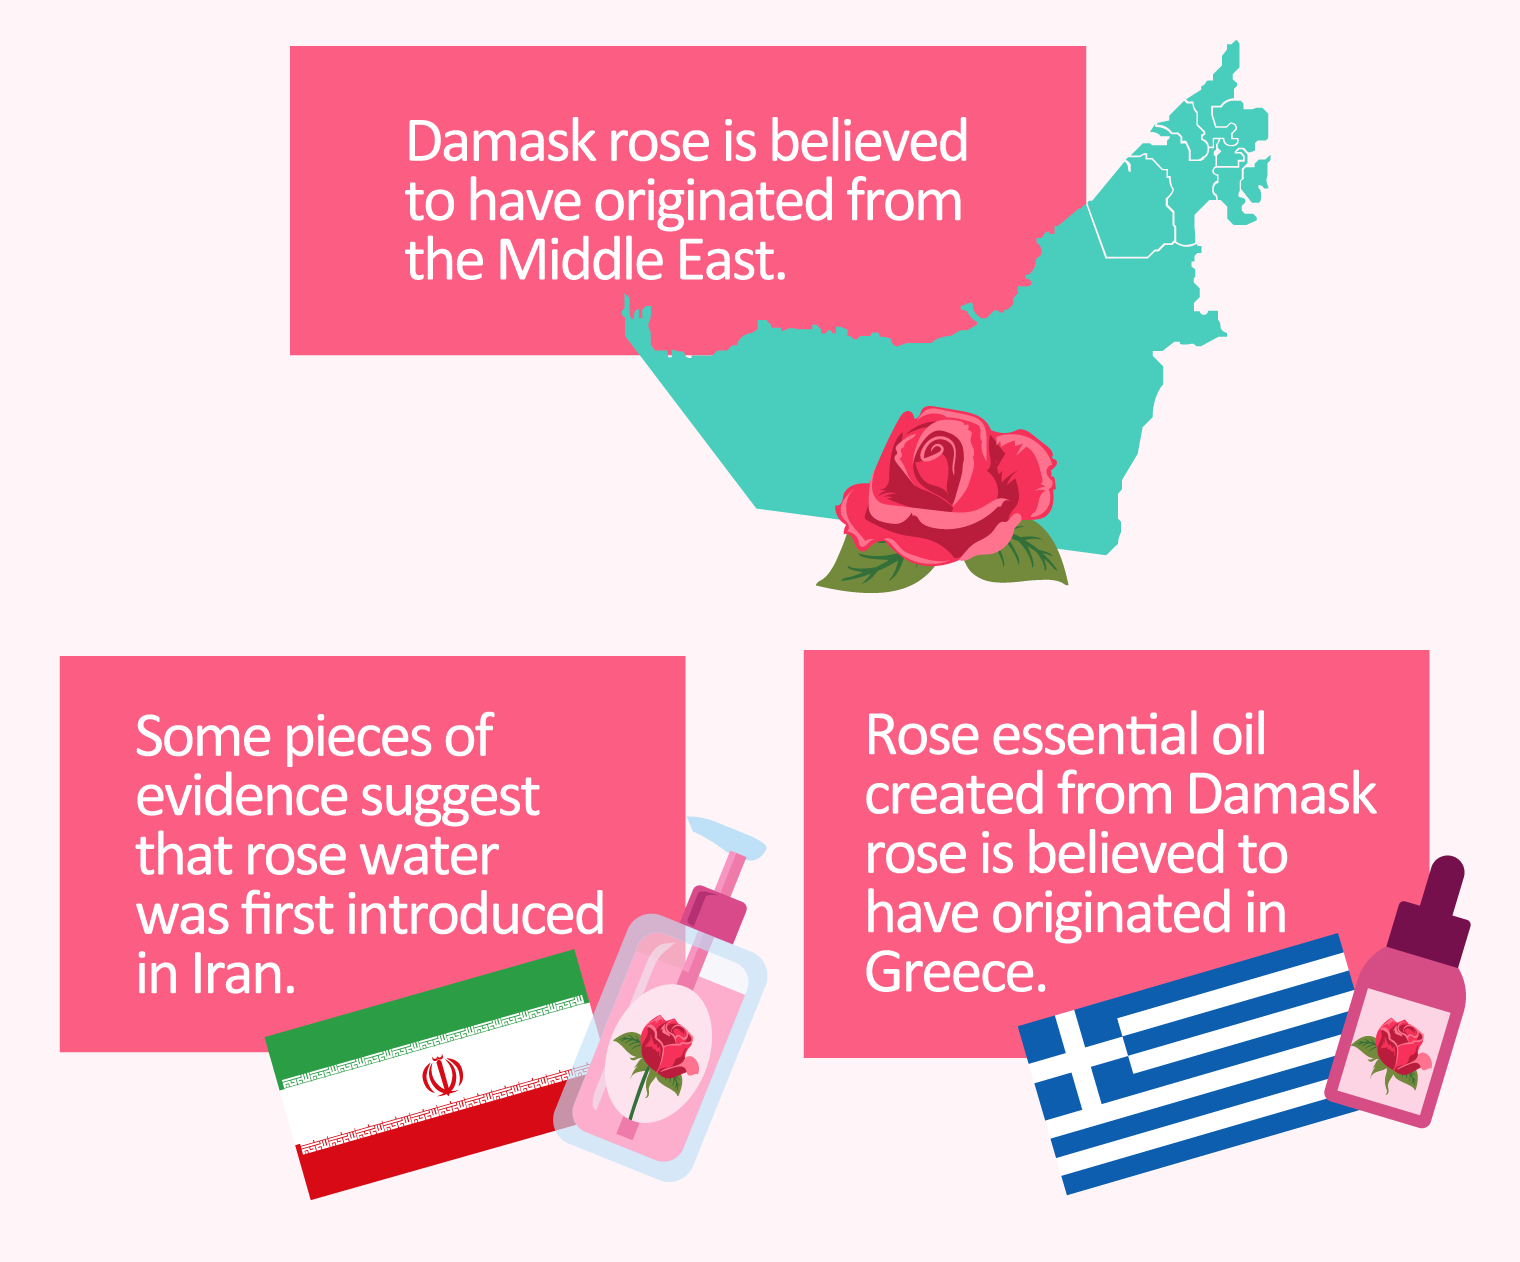 illustration of history of damask rose